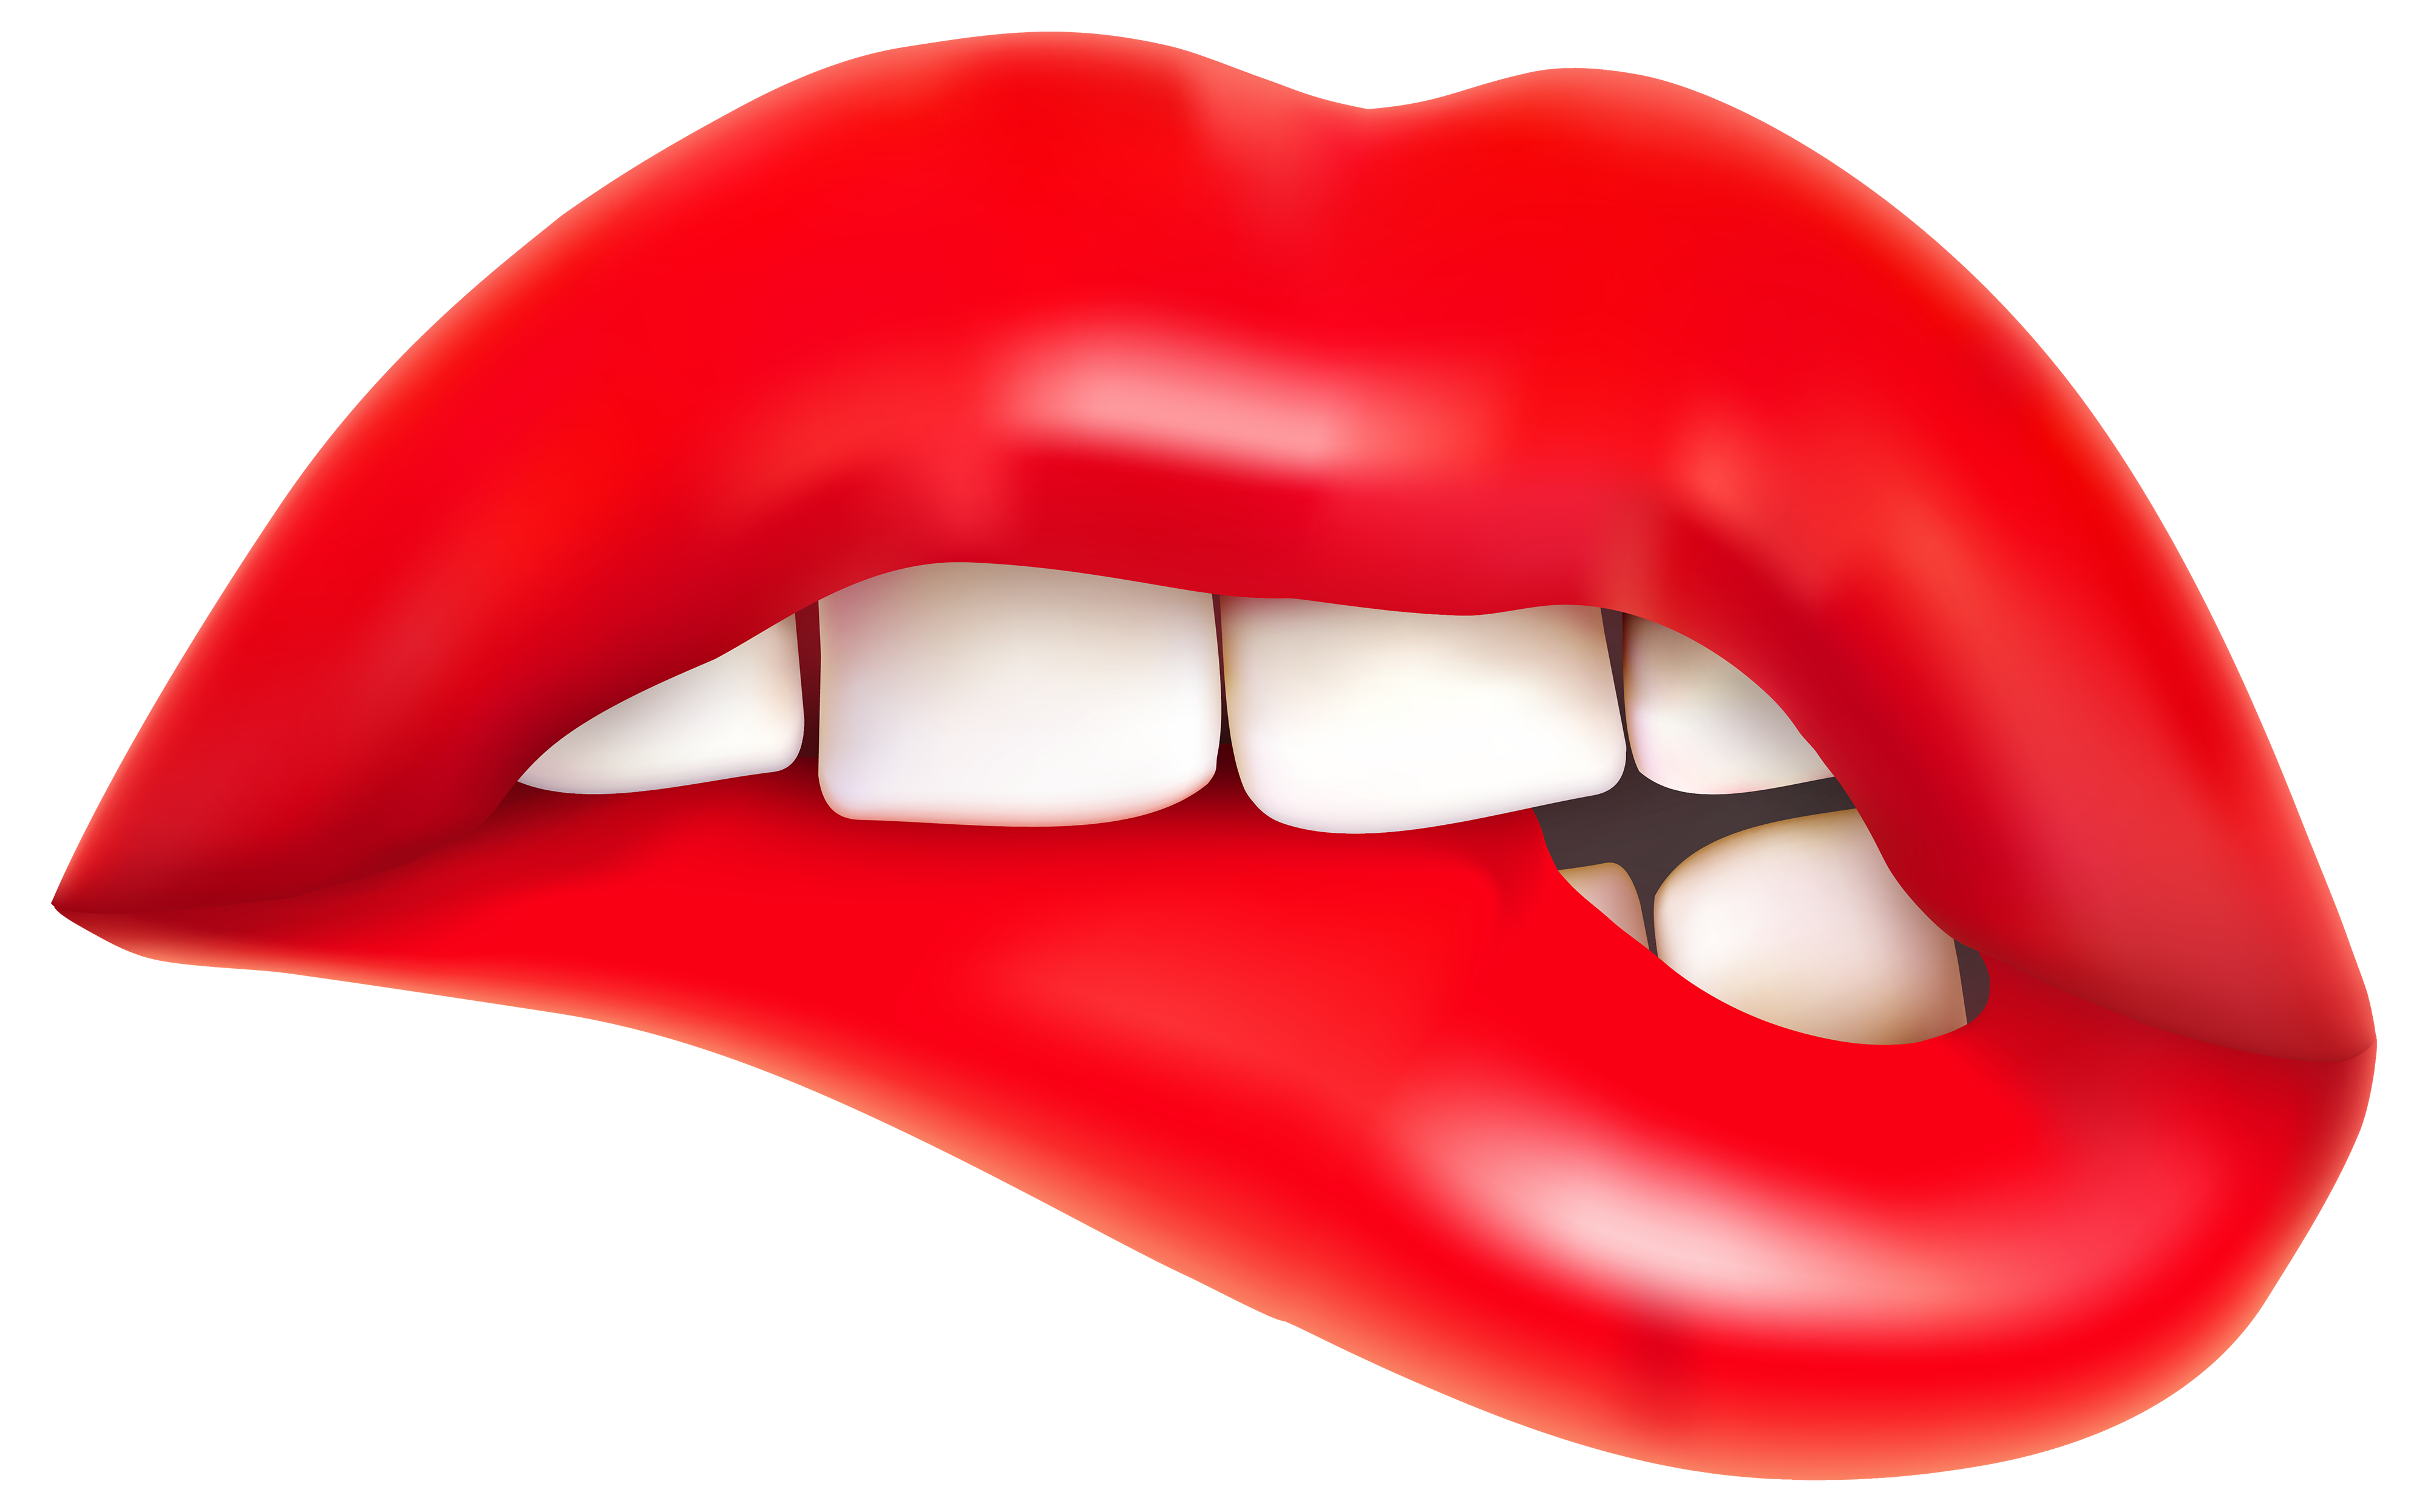 Lips clipart #5, Download drawings